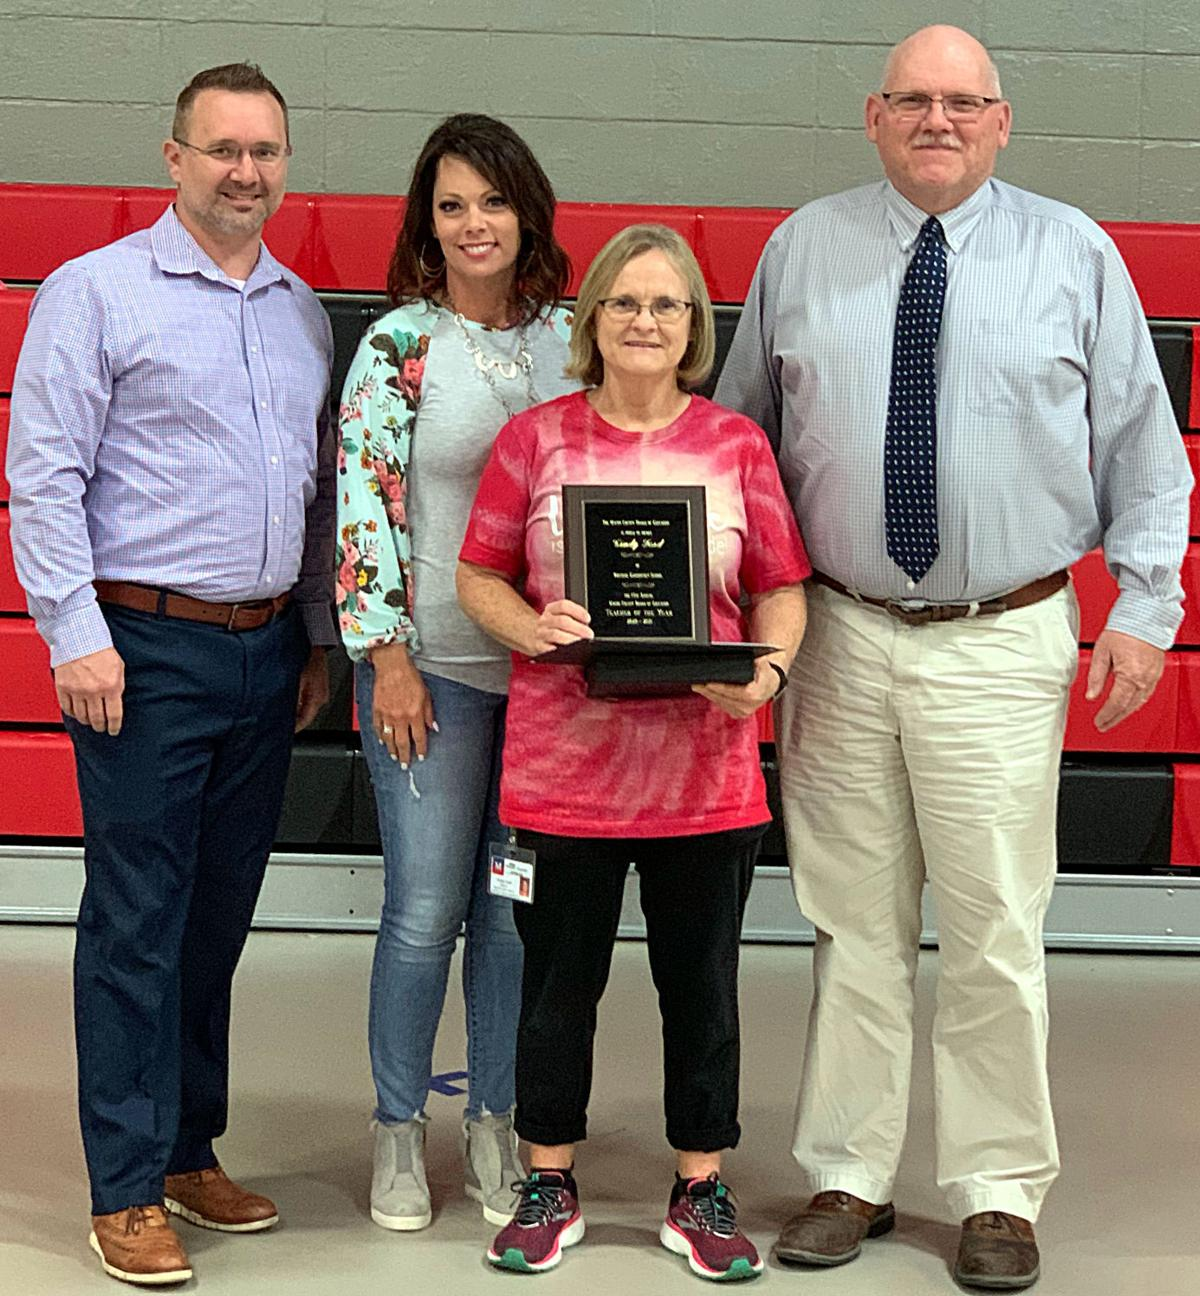 CINDY FORD NAMED TEACHER OF THE YEAR PHOTO 1